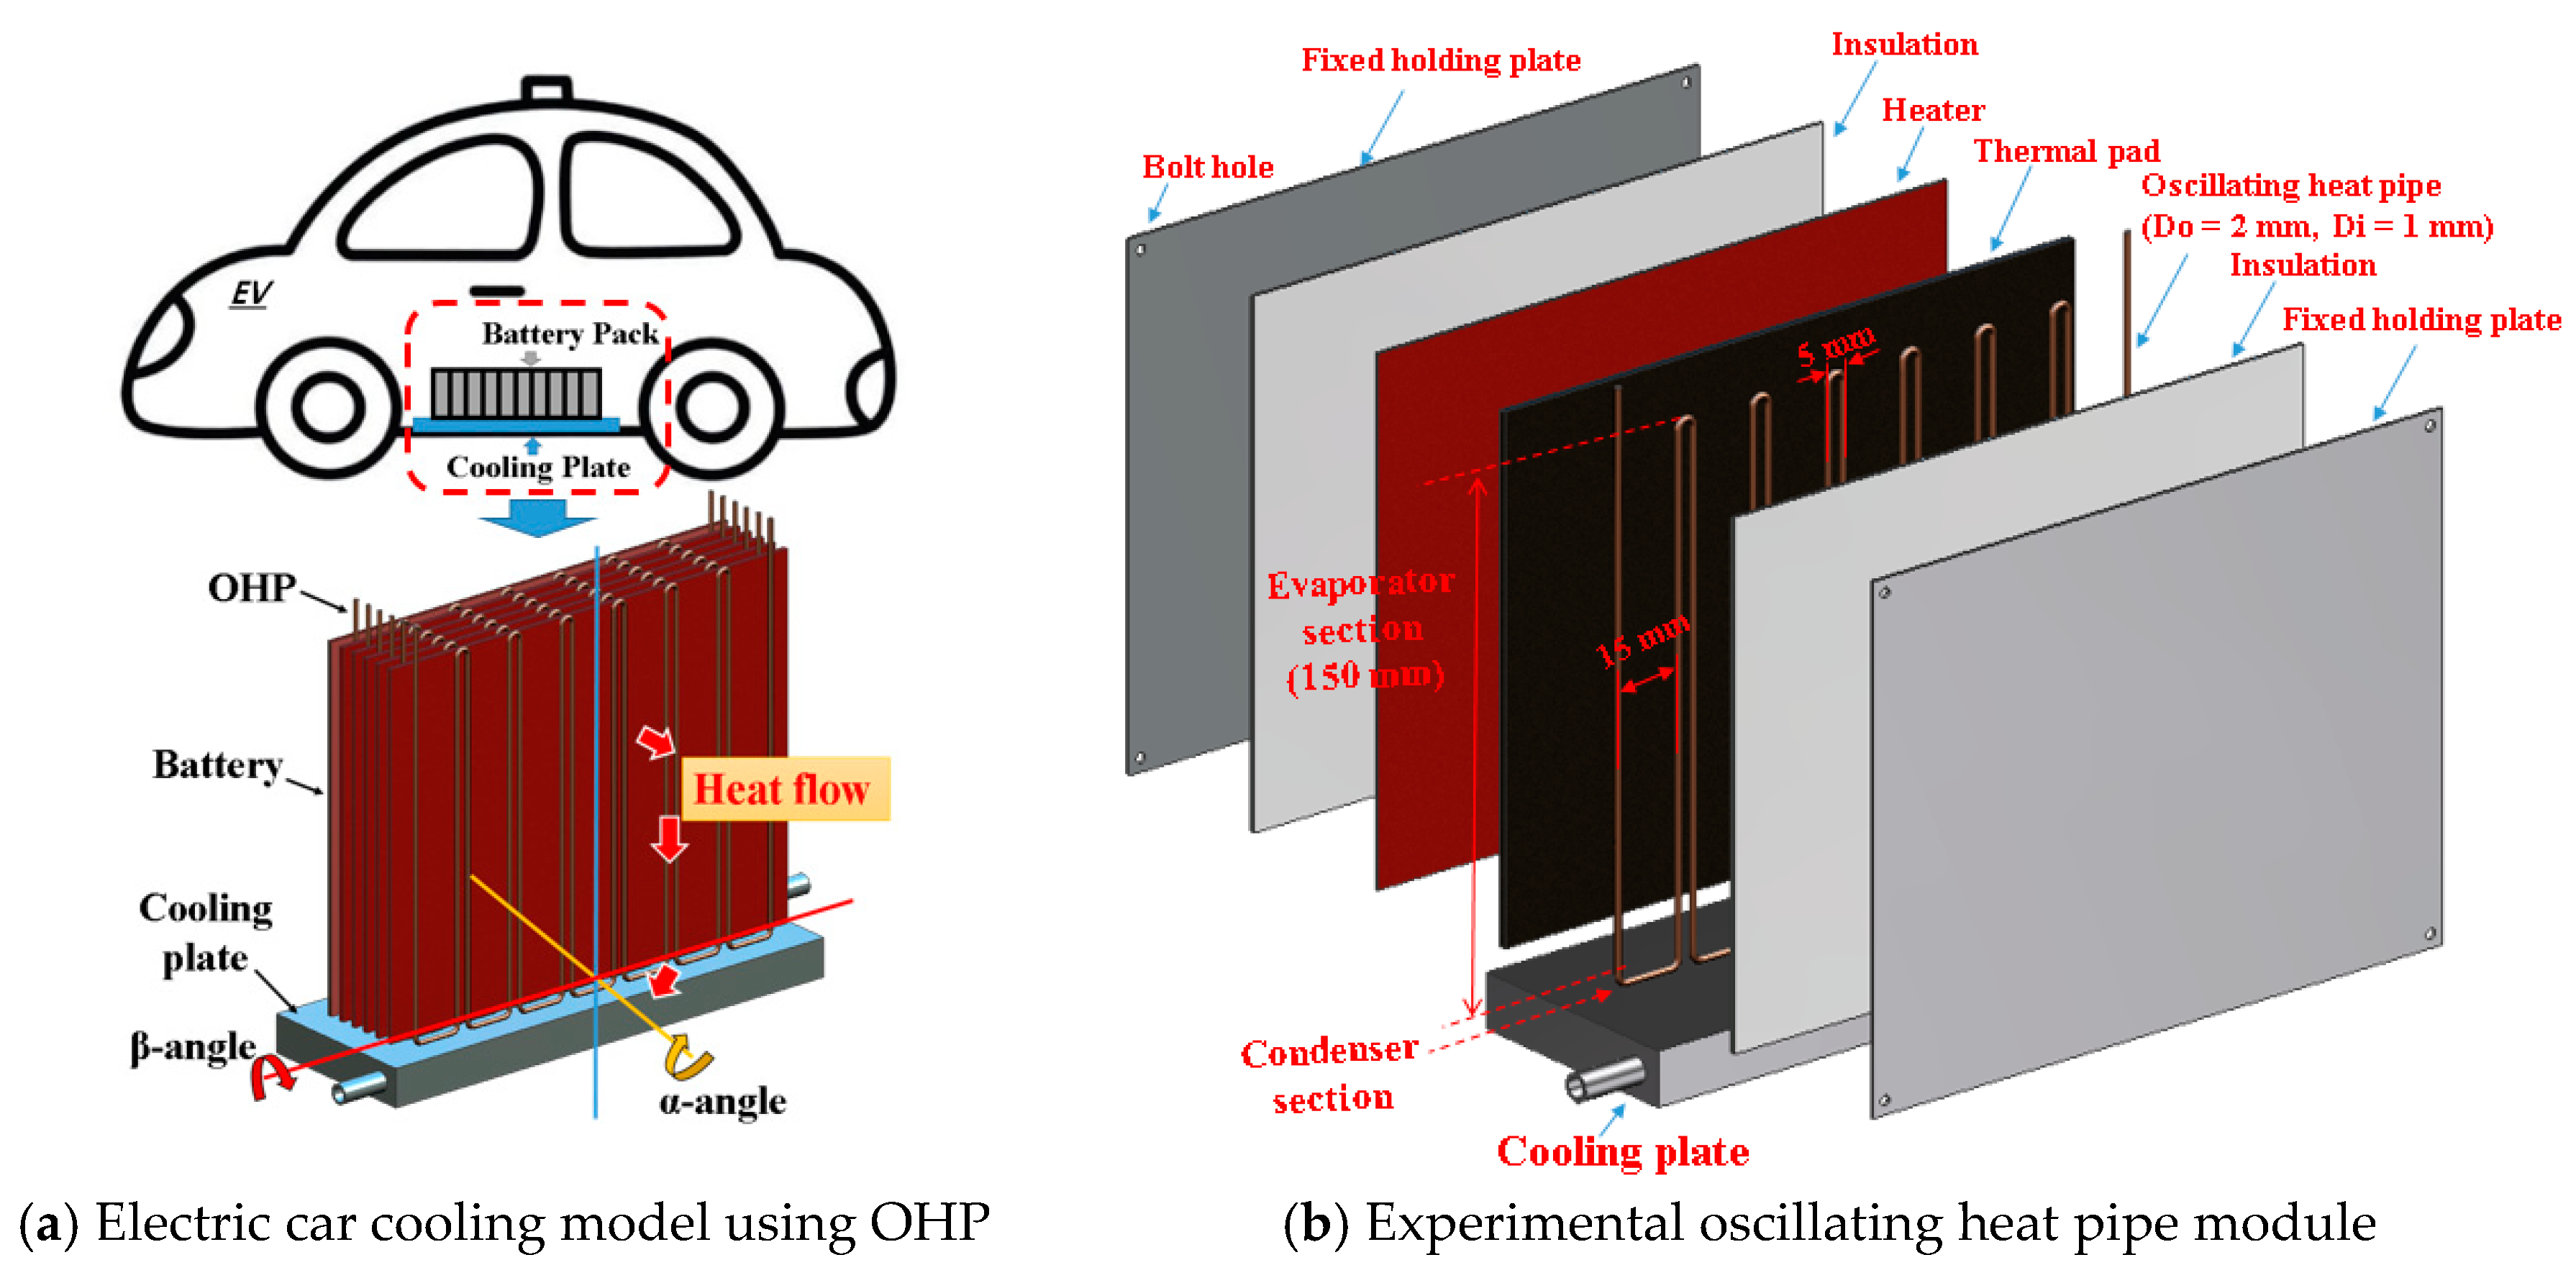 Lithium Ion Car Battery >> Energies | Free Full-Text | Oscillating Heat Pipe Cooling ...